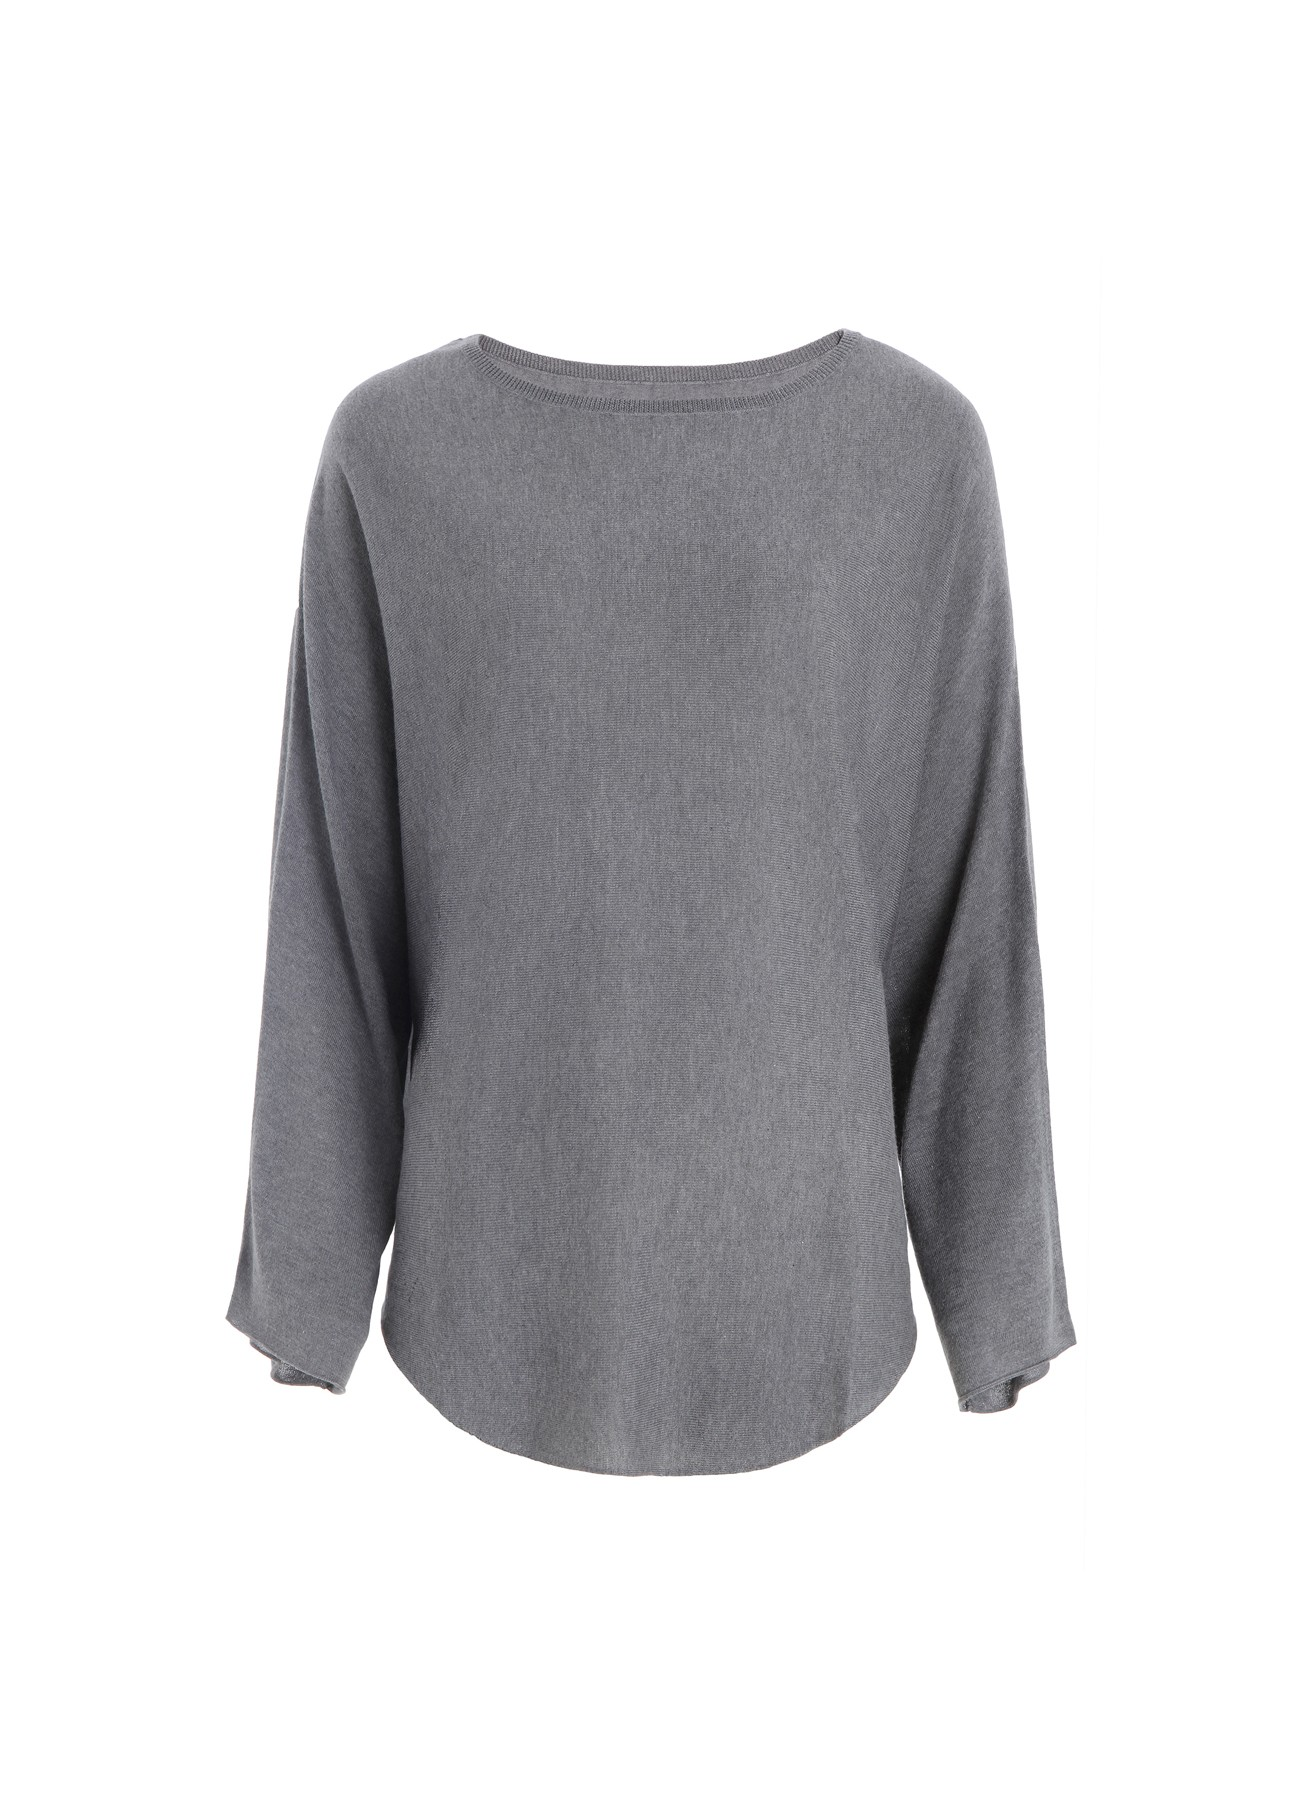 Sweater  for woman grey marl zadig&voltaire